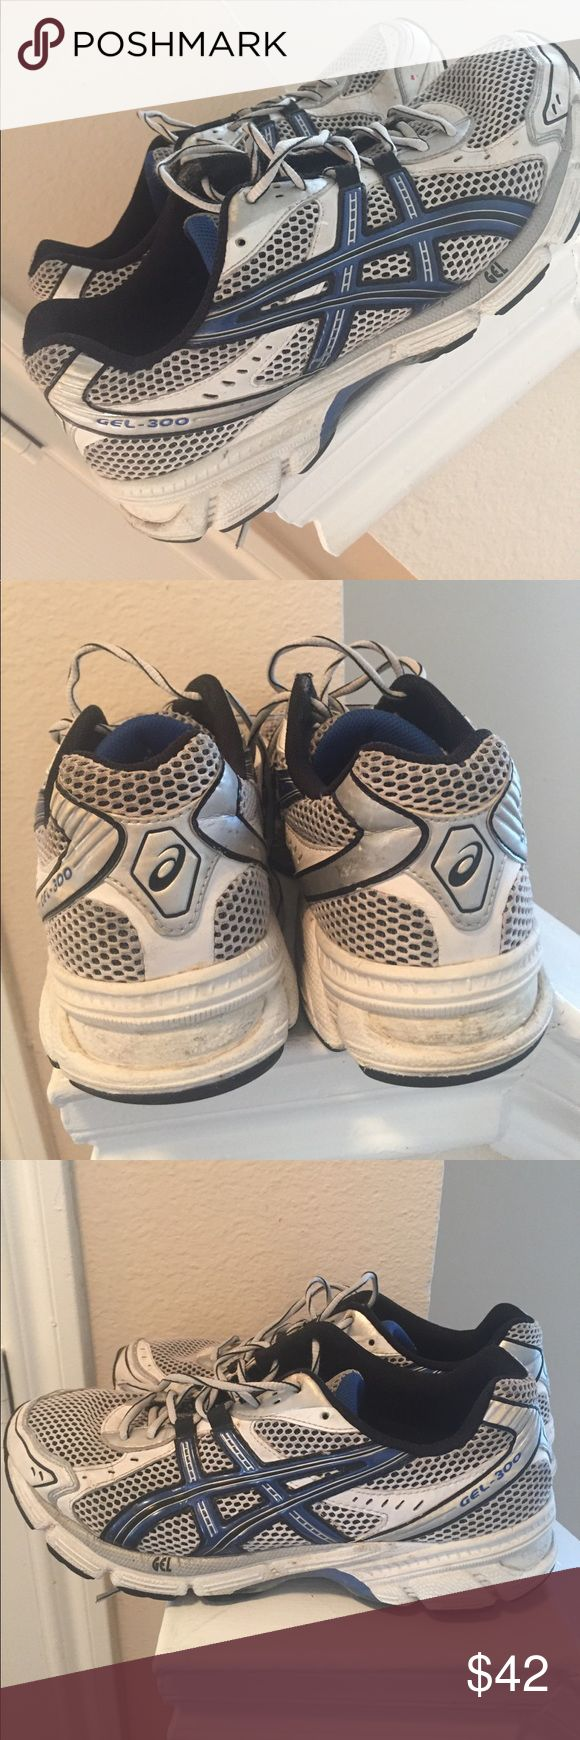 Asics Gel-300 Size 8.5 Men Size 8.5 Asics shoes. Blue, White, and Black. Great running shoes. Well maintained. Everything intact. Very comfortable shoes. Asics Shoes Athletic Shoes